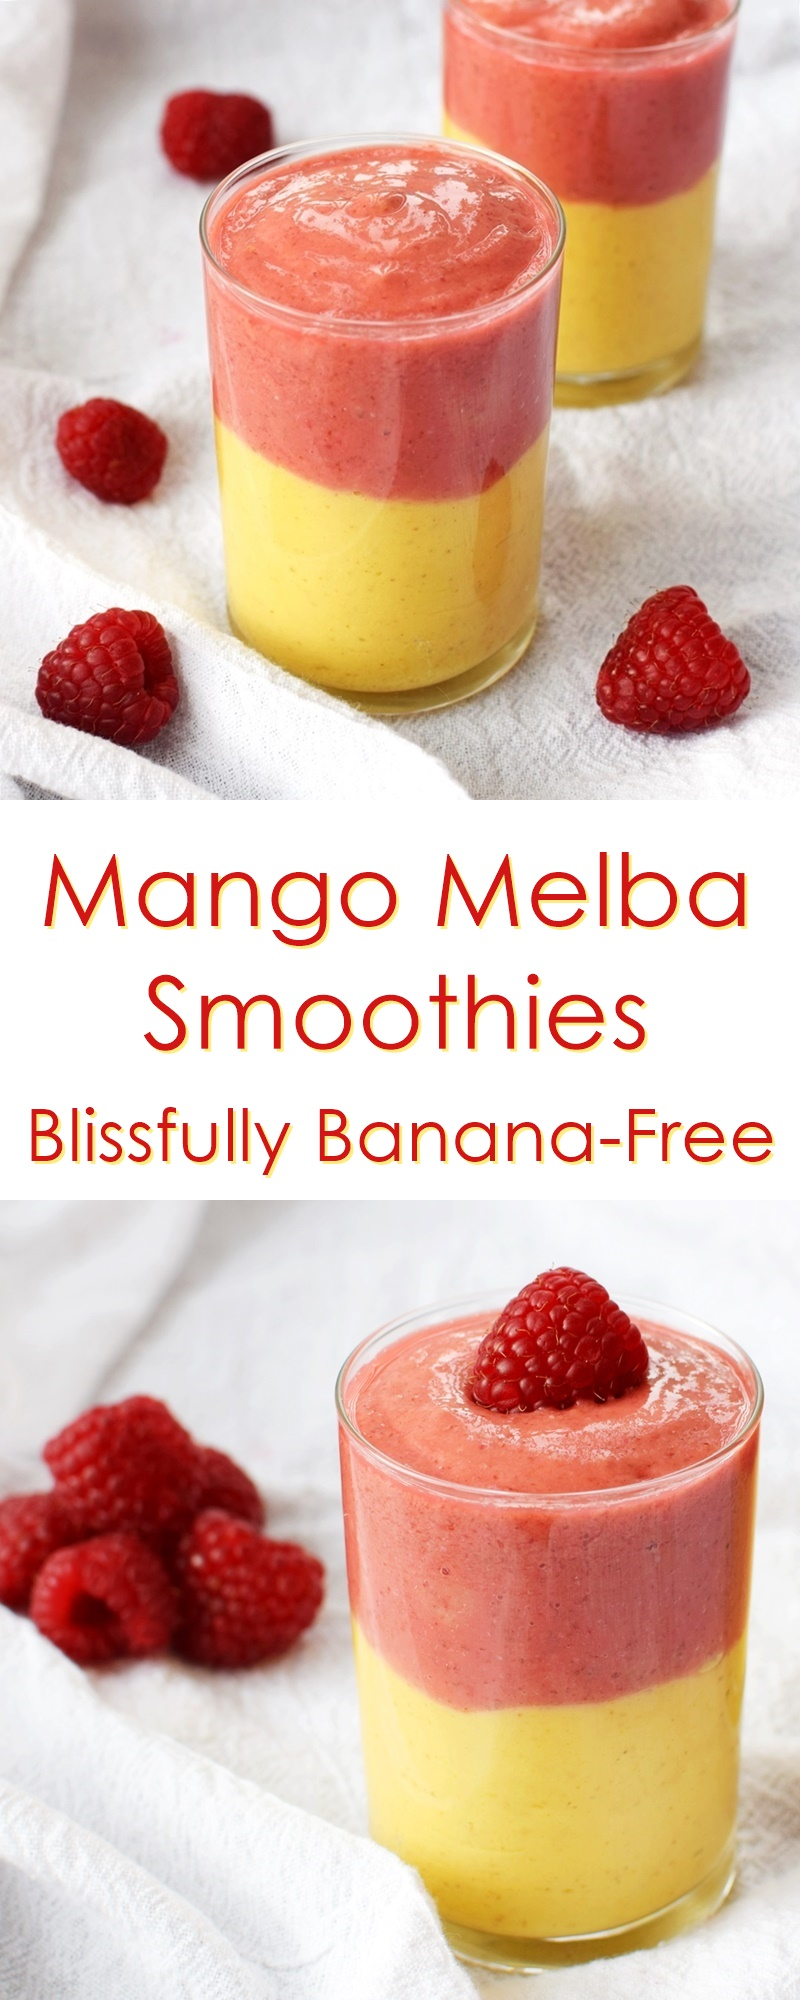 Mango Melba Smoothies Recipe - a tropical twist on a classic flavor, but healthier, dairy-free, nut-free, banana-free and vegan.